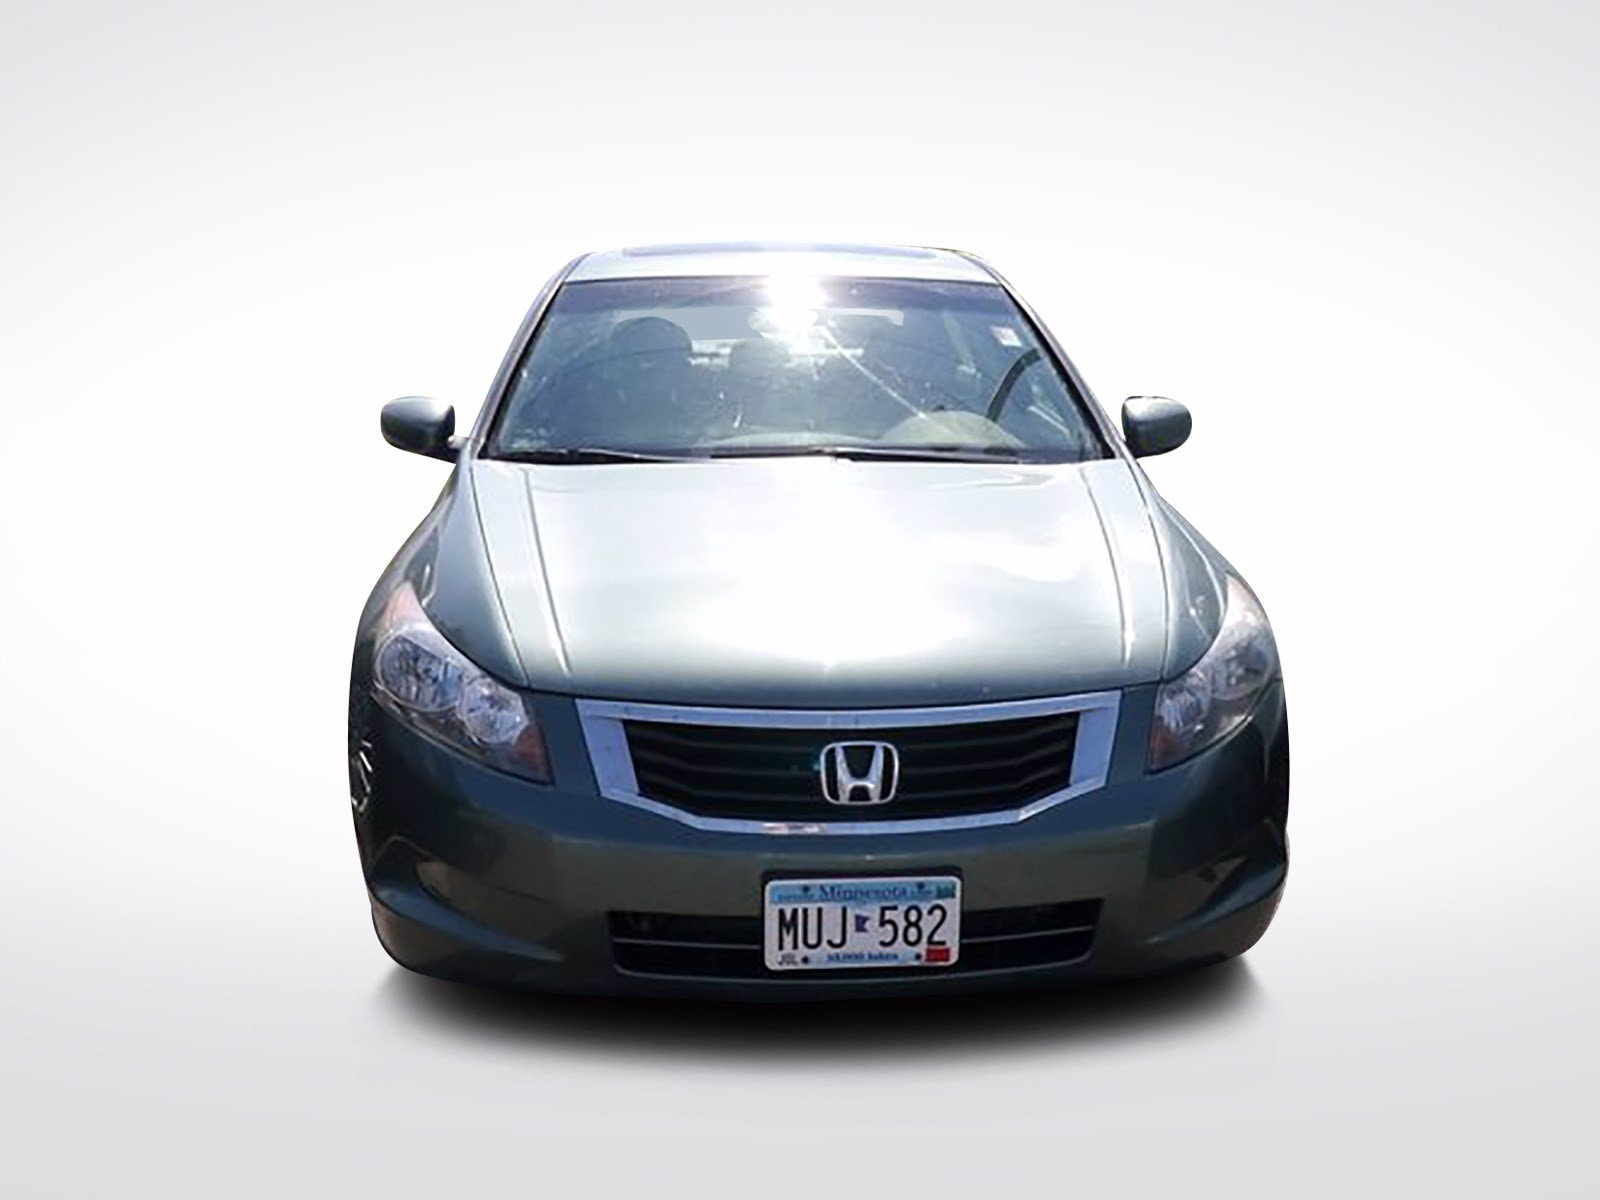 Used 2008 Honda Accord EX-L with VIN 1HGCP26828A084086 for sale in Baxter, Minnesota